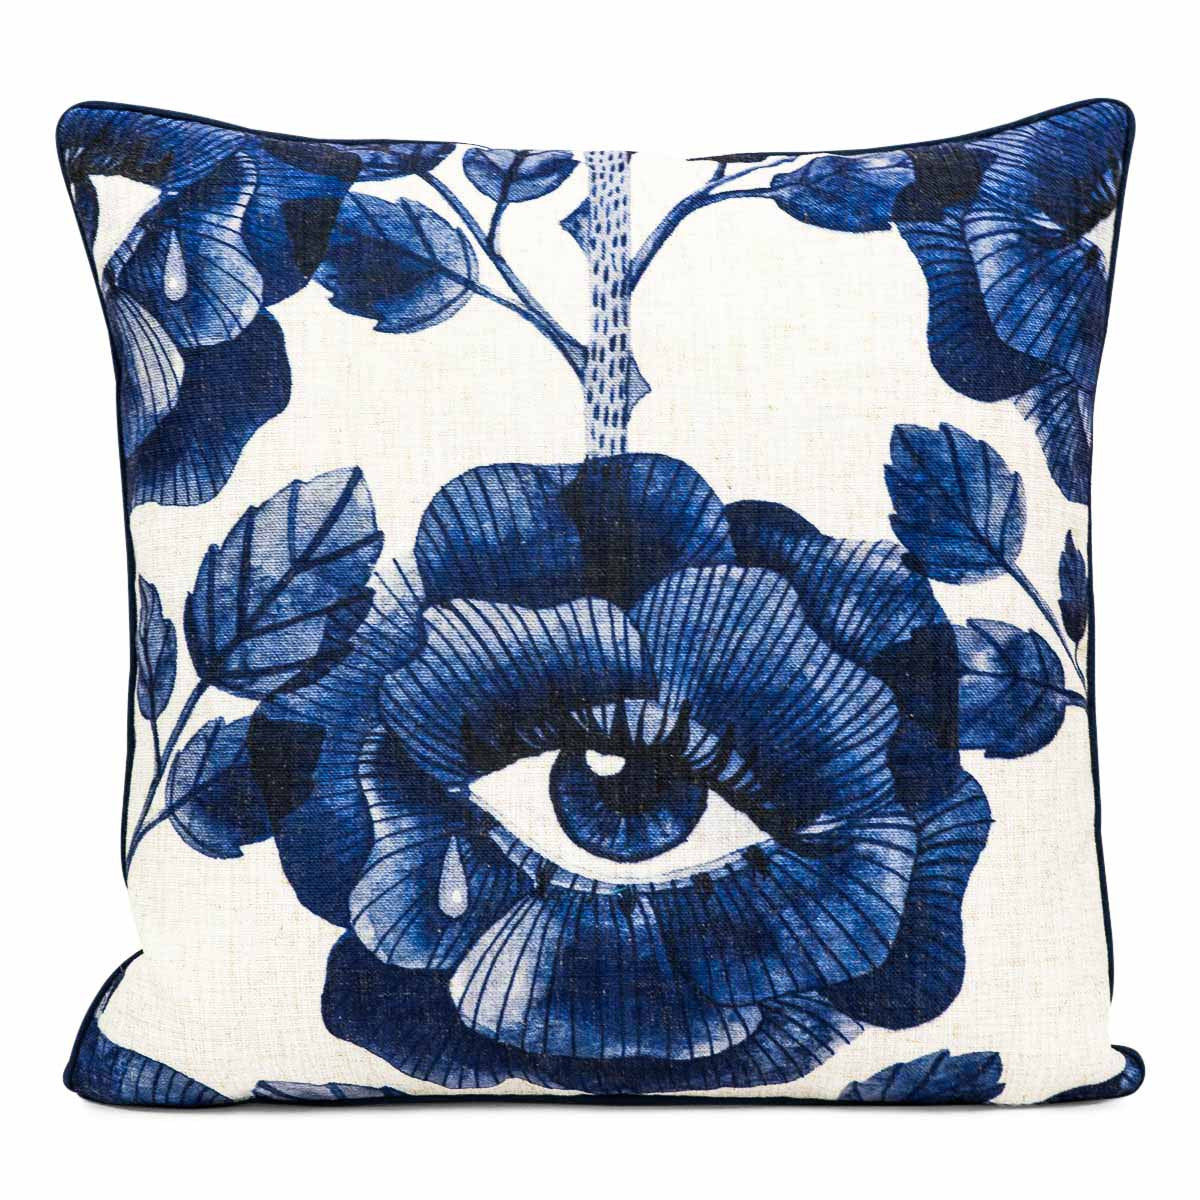 Floral Eyes Pillow in Navy Blue - ModShop1.com